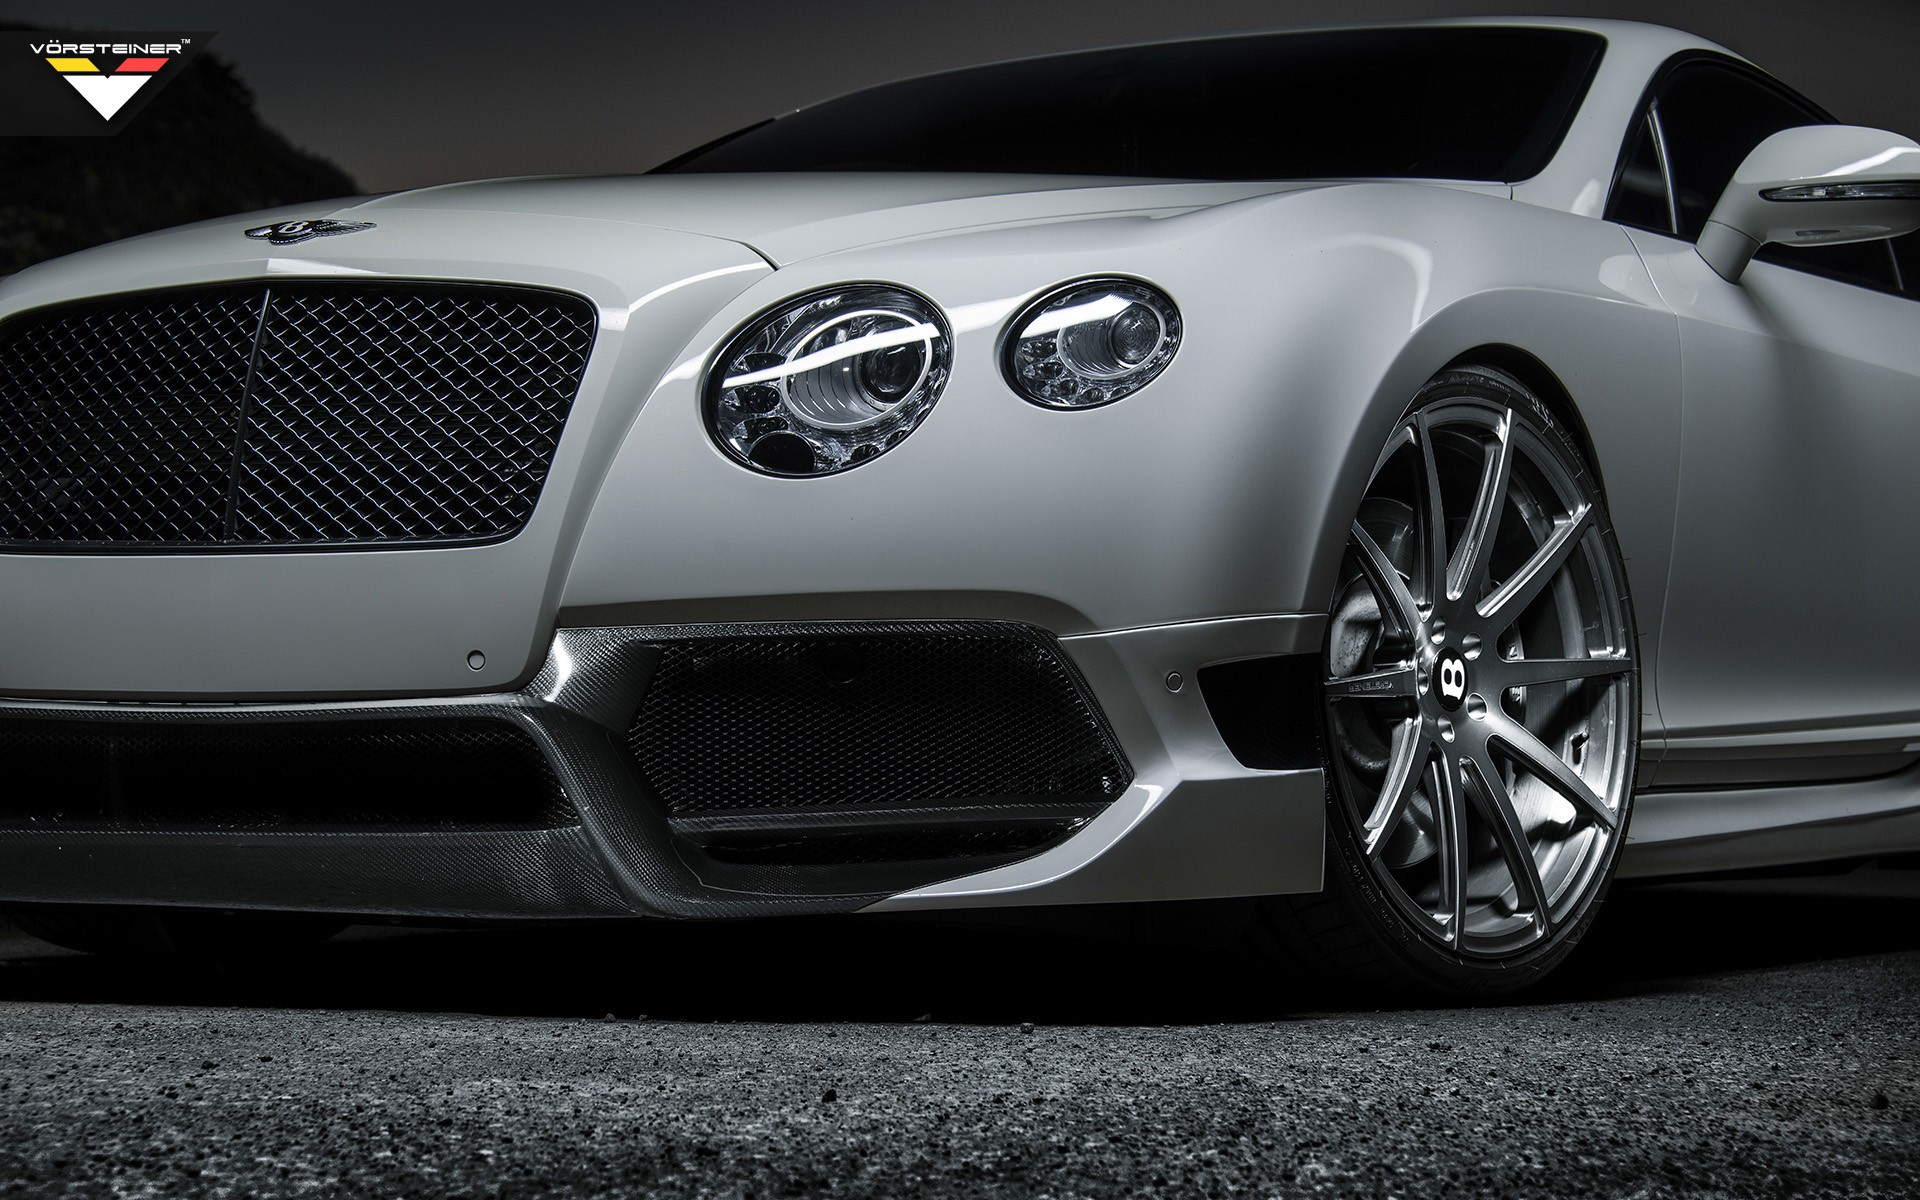 bentley continental gt v8 s 2016 html with 2013 Vorsteiner Bentley Continental Gt Br10 Rs 2 Wallpapers on Mercedes Benz Clk 200 Kompressor 898532f846e06066 moreover 2013 vorsteiner bentley continental gt br10 rs 2 Wallpapers furthermore Ge Universal Remote Tv Code List 7b5cdbfecd83cb68 as well 2015 Jaguar F Type Coupe Orange 69e3b40ea3b0cd27 in addition Bentley Continental Gt Black Edition 2017 Cars 33.